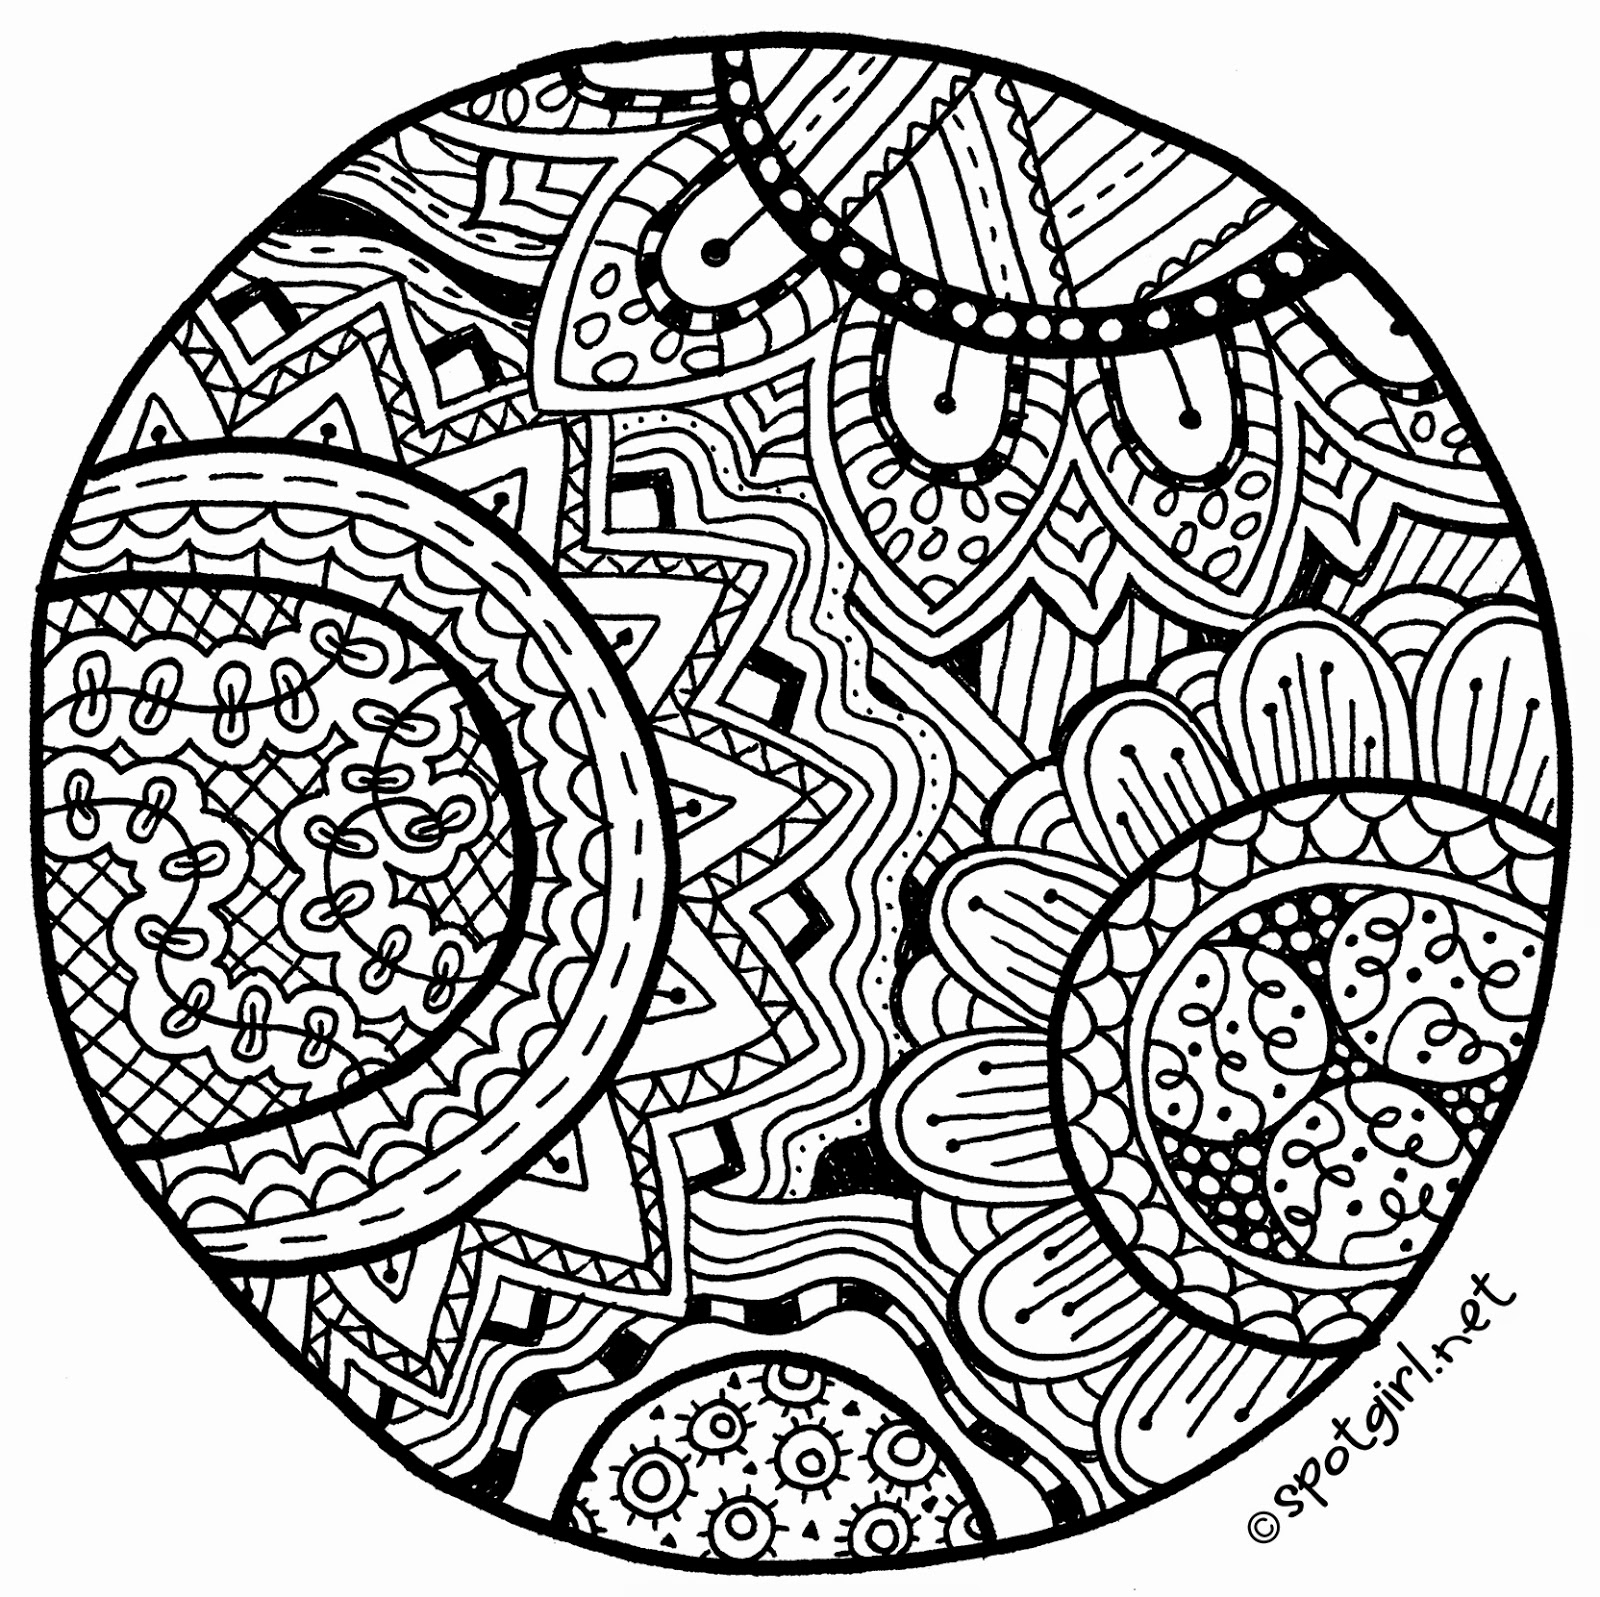 zentangle coloring pages free printable free print zentangle patterns zentangle inspired pages printable coloring zentangle free